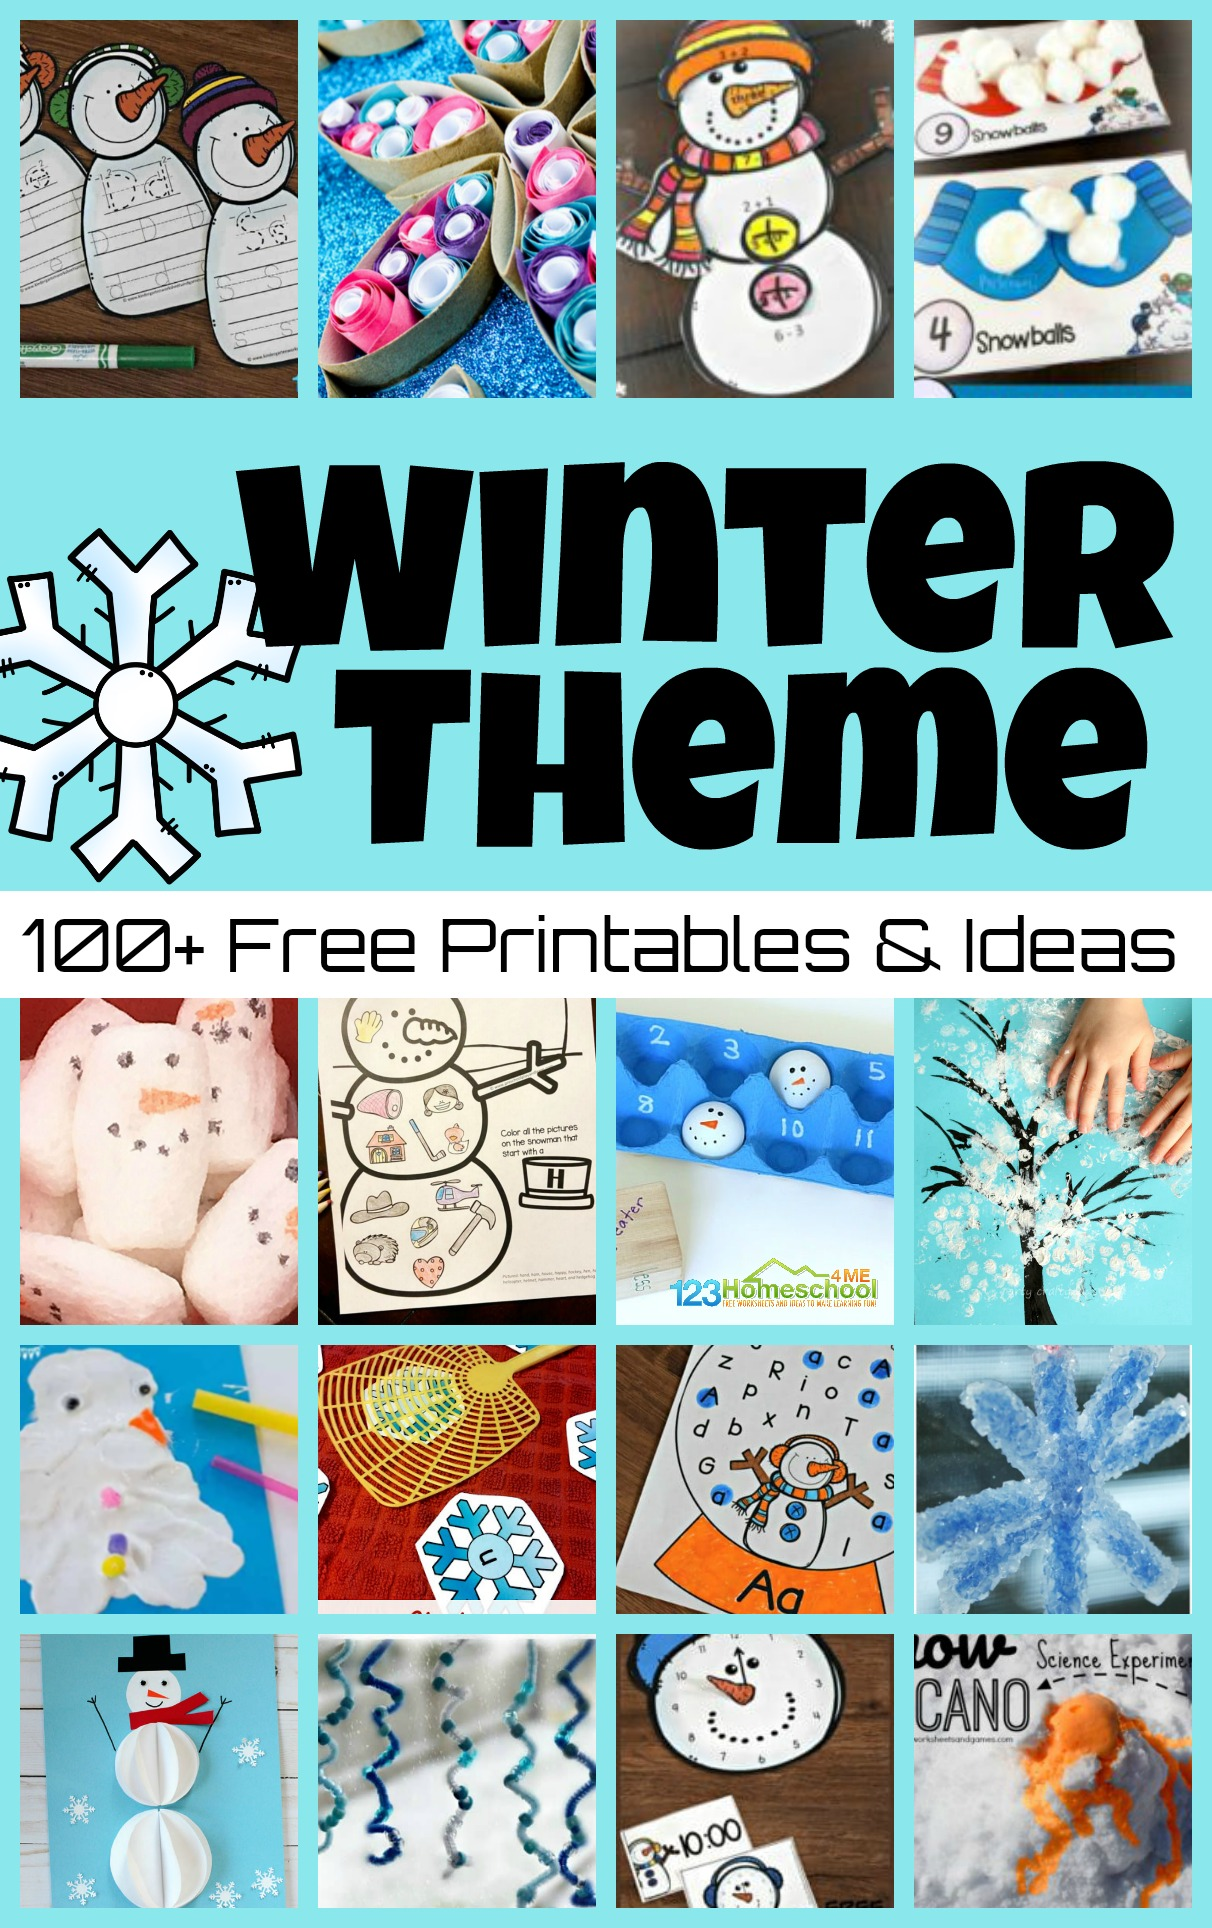 Your children will have fun learning all winter long with these fun ideas for a winter theme! We have over 100 free printable winter theme ideas, plus winter crafts and winter activities for kids. Plus we have educational activities like winter math and winter science and language arts activities too! This January theme is perfect for preschool, pre-k, kindergarten, first grade, 2nd grade, 3rd grade, 4th grade, 5th grade, and 6th graders too.